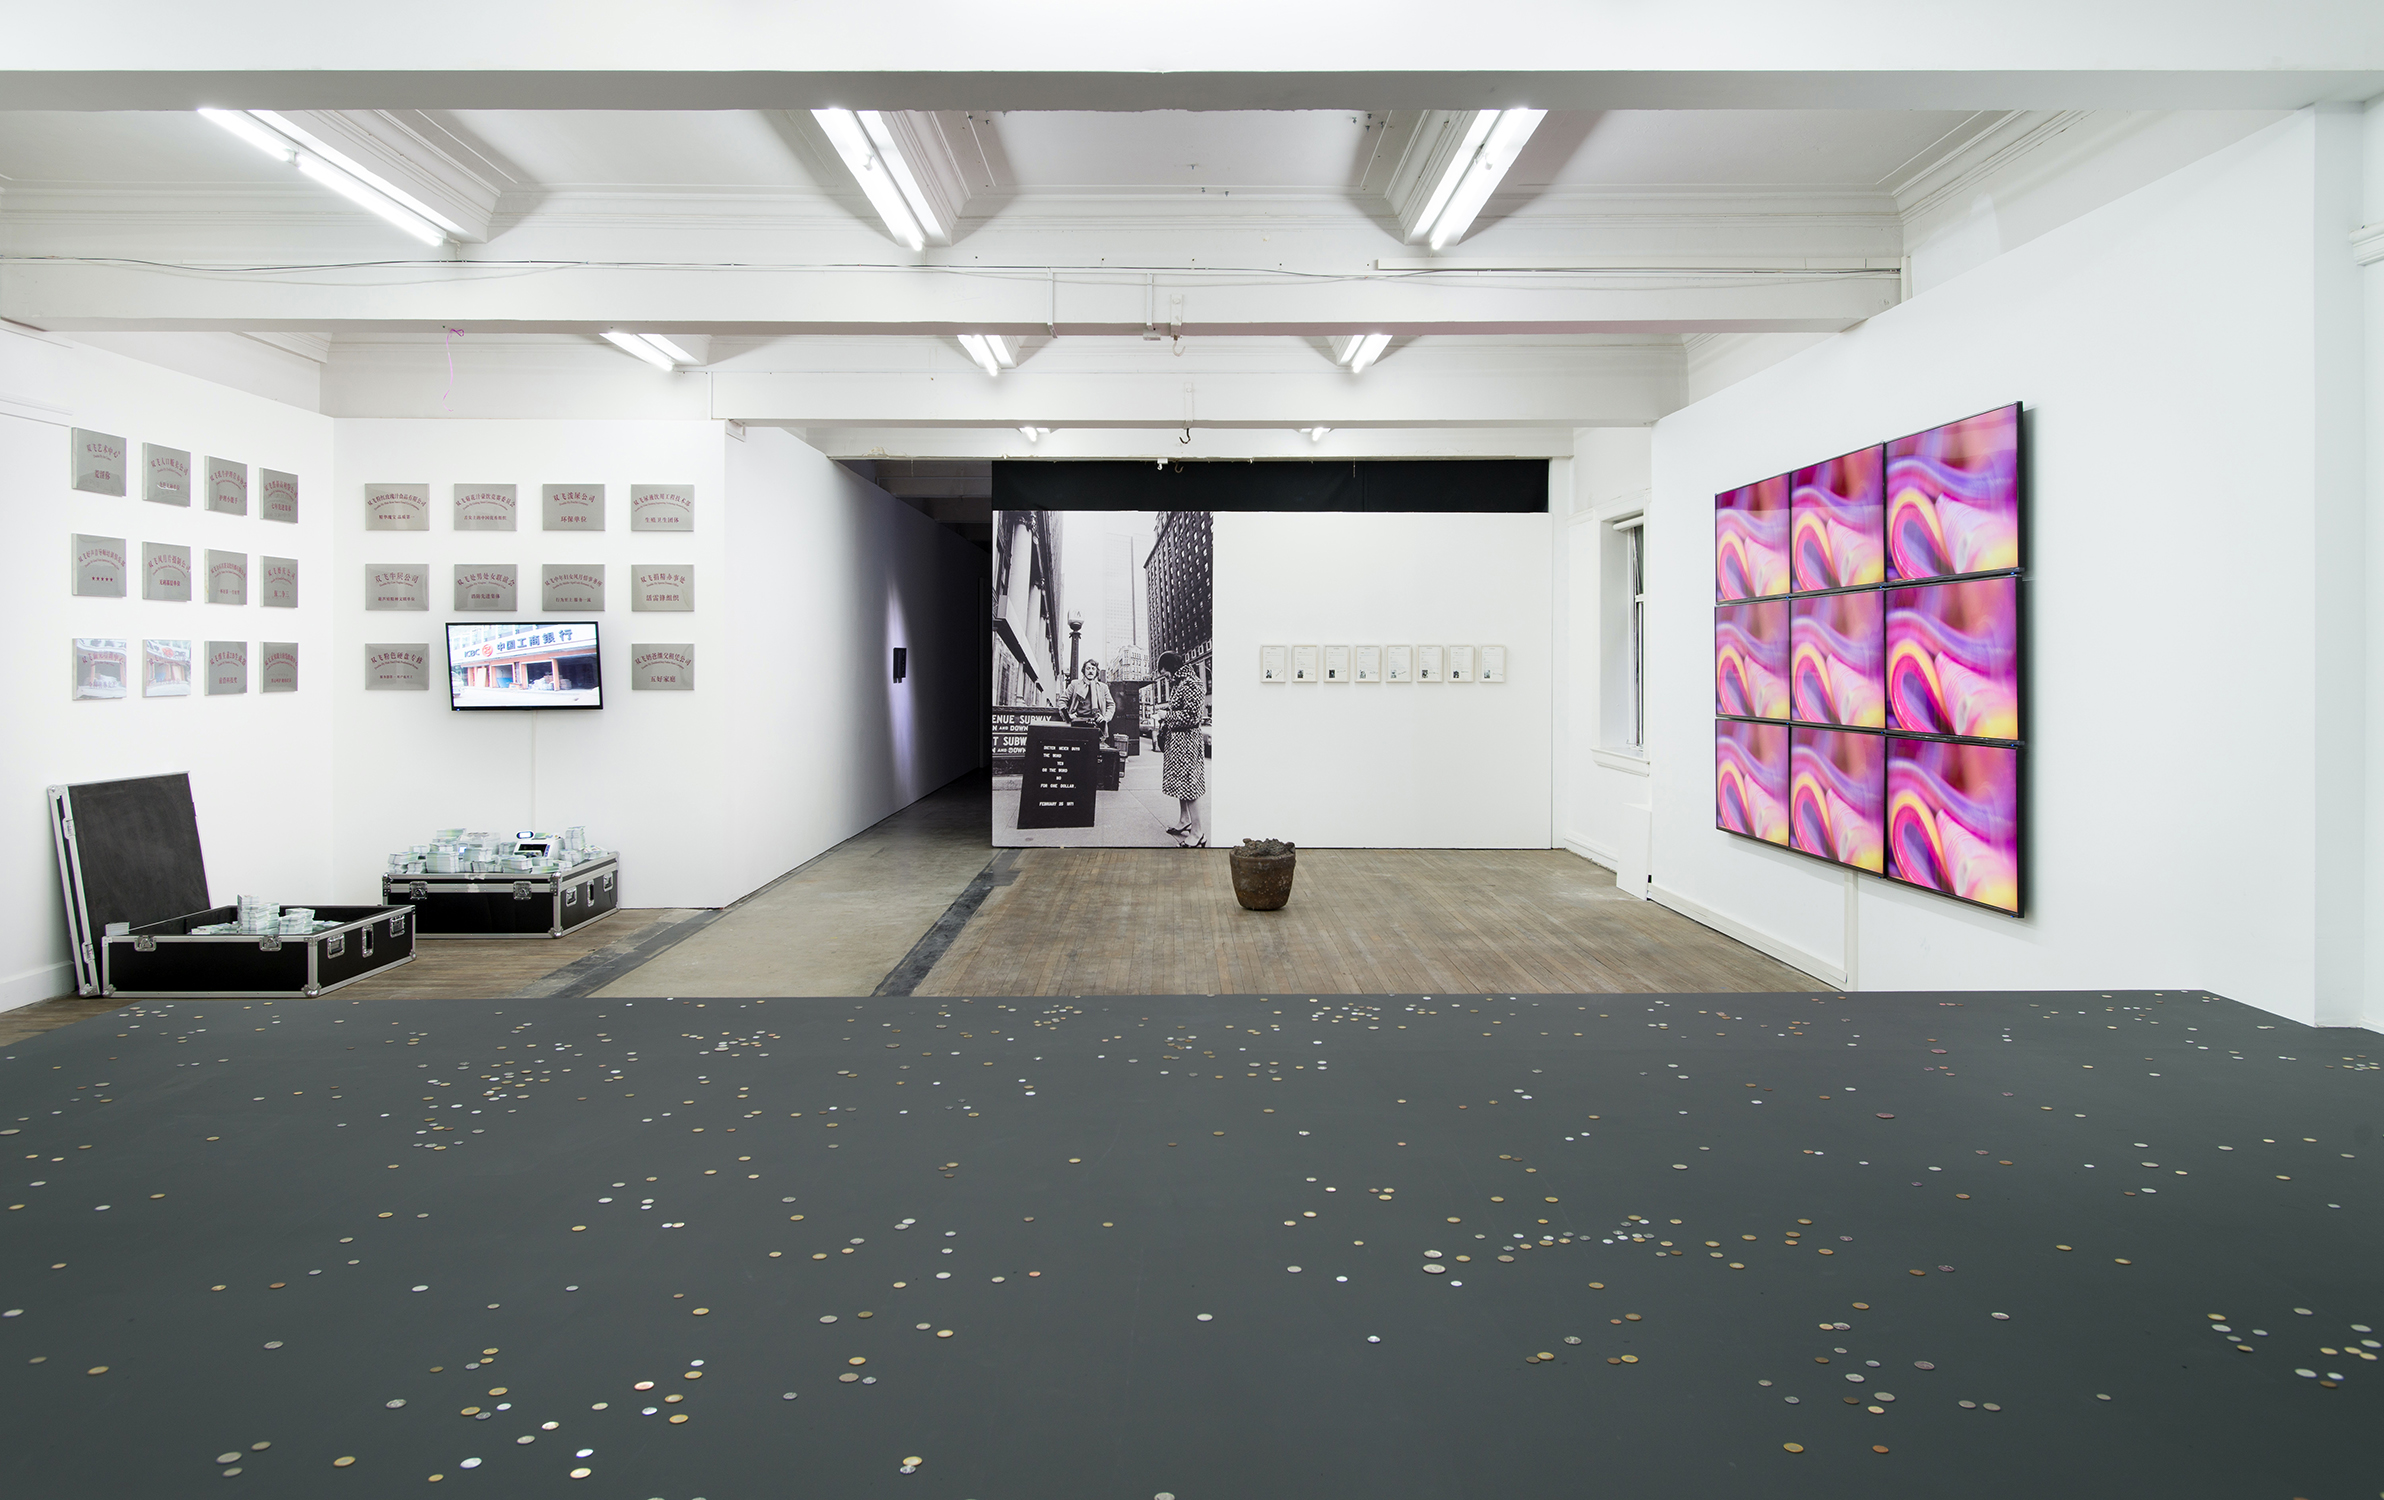 Exhibition view, The Bank Show, Vive Le Capital, (2015), BANK, Shanghai. Image courtesy the gallery.